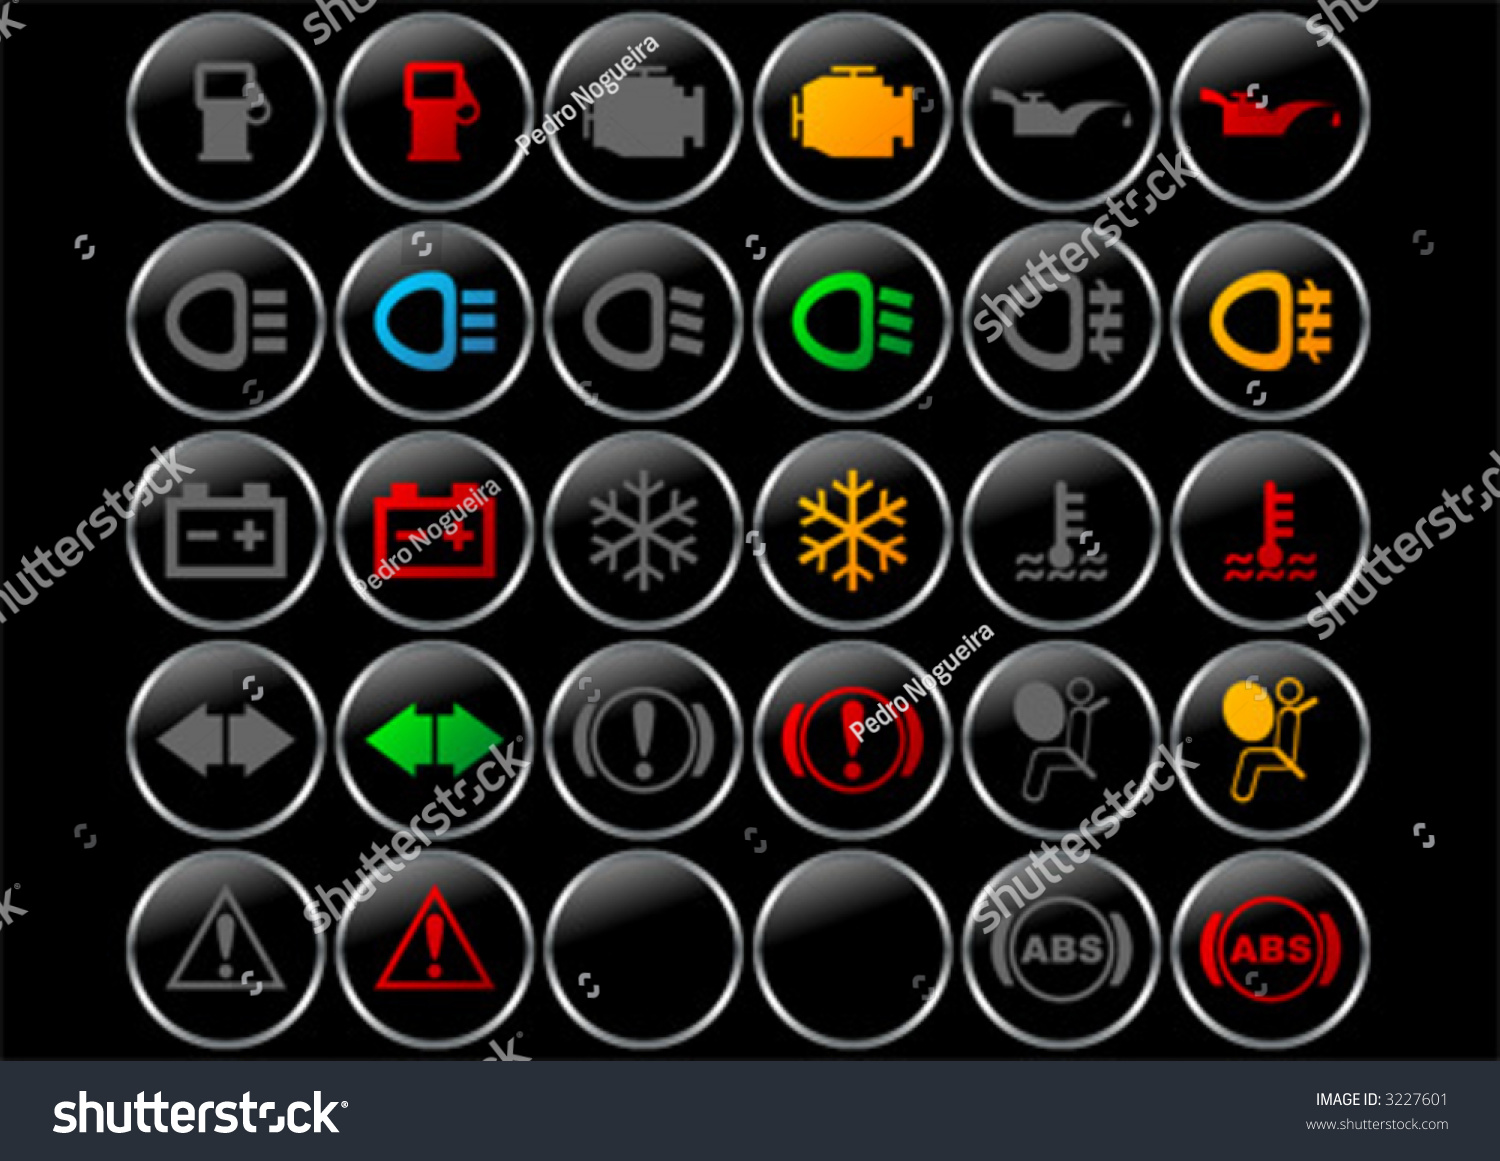 Different Car Dashboard Symbols Lights On Stock Vector 3227601 ...